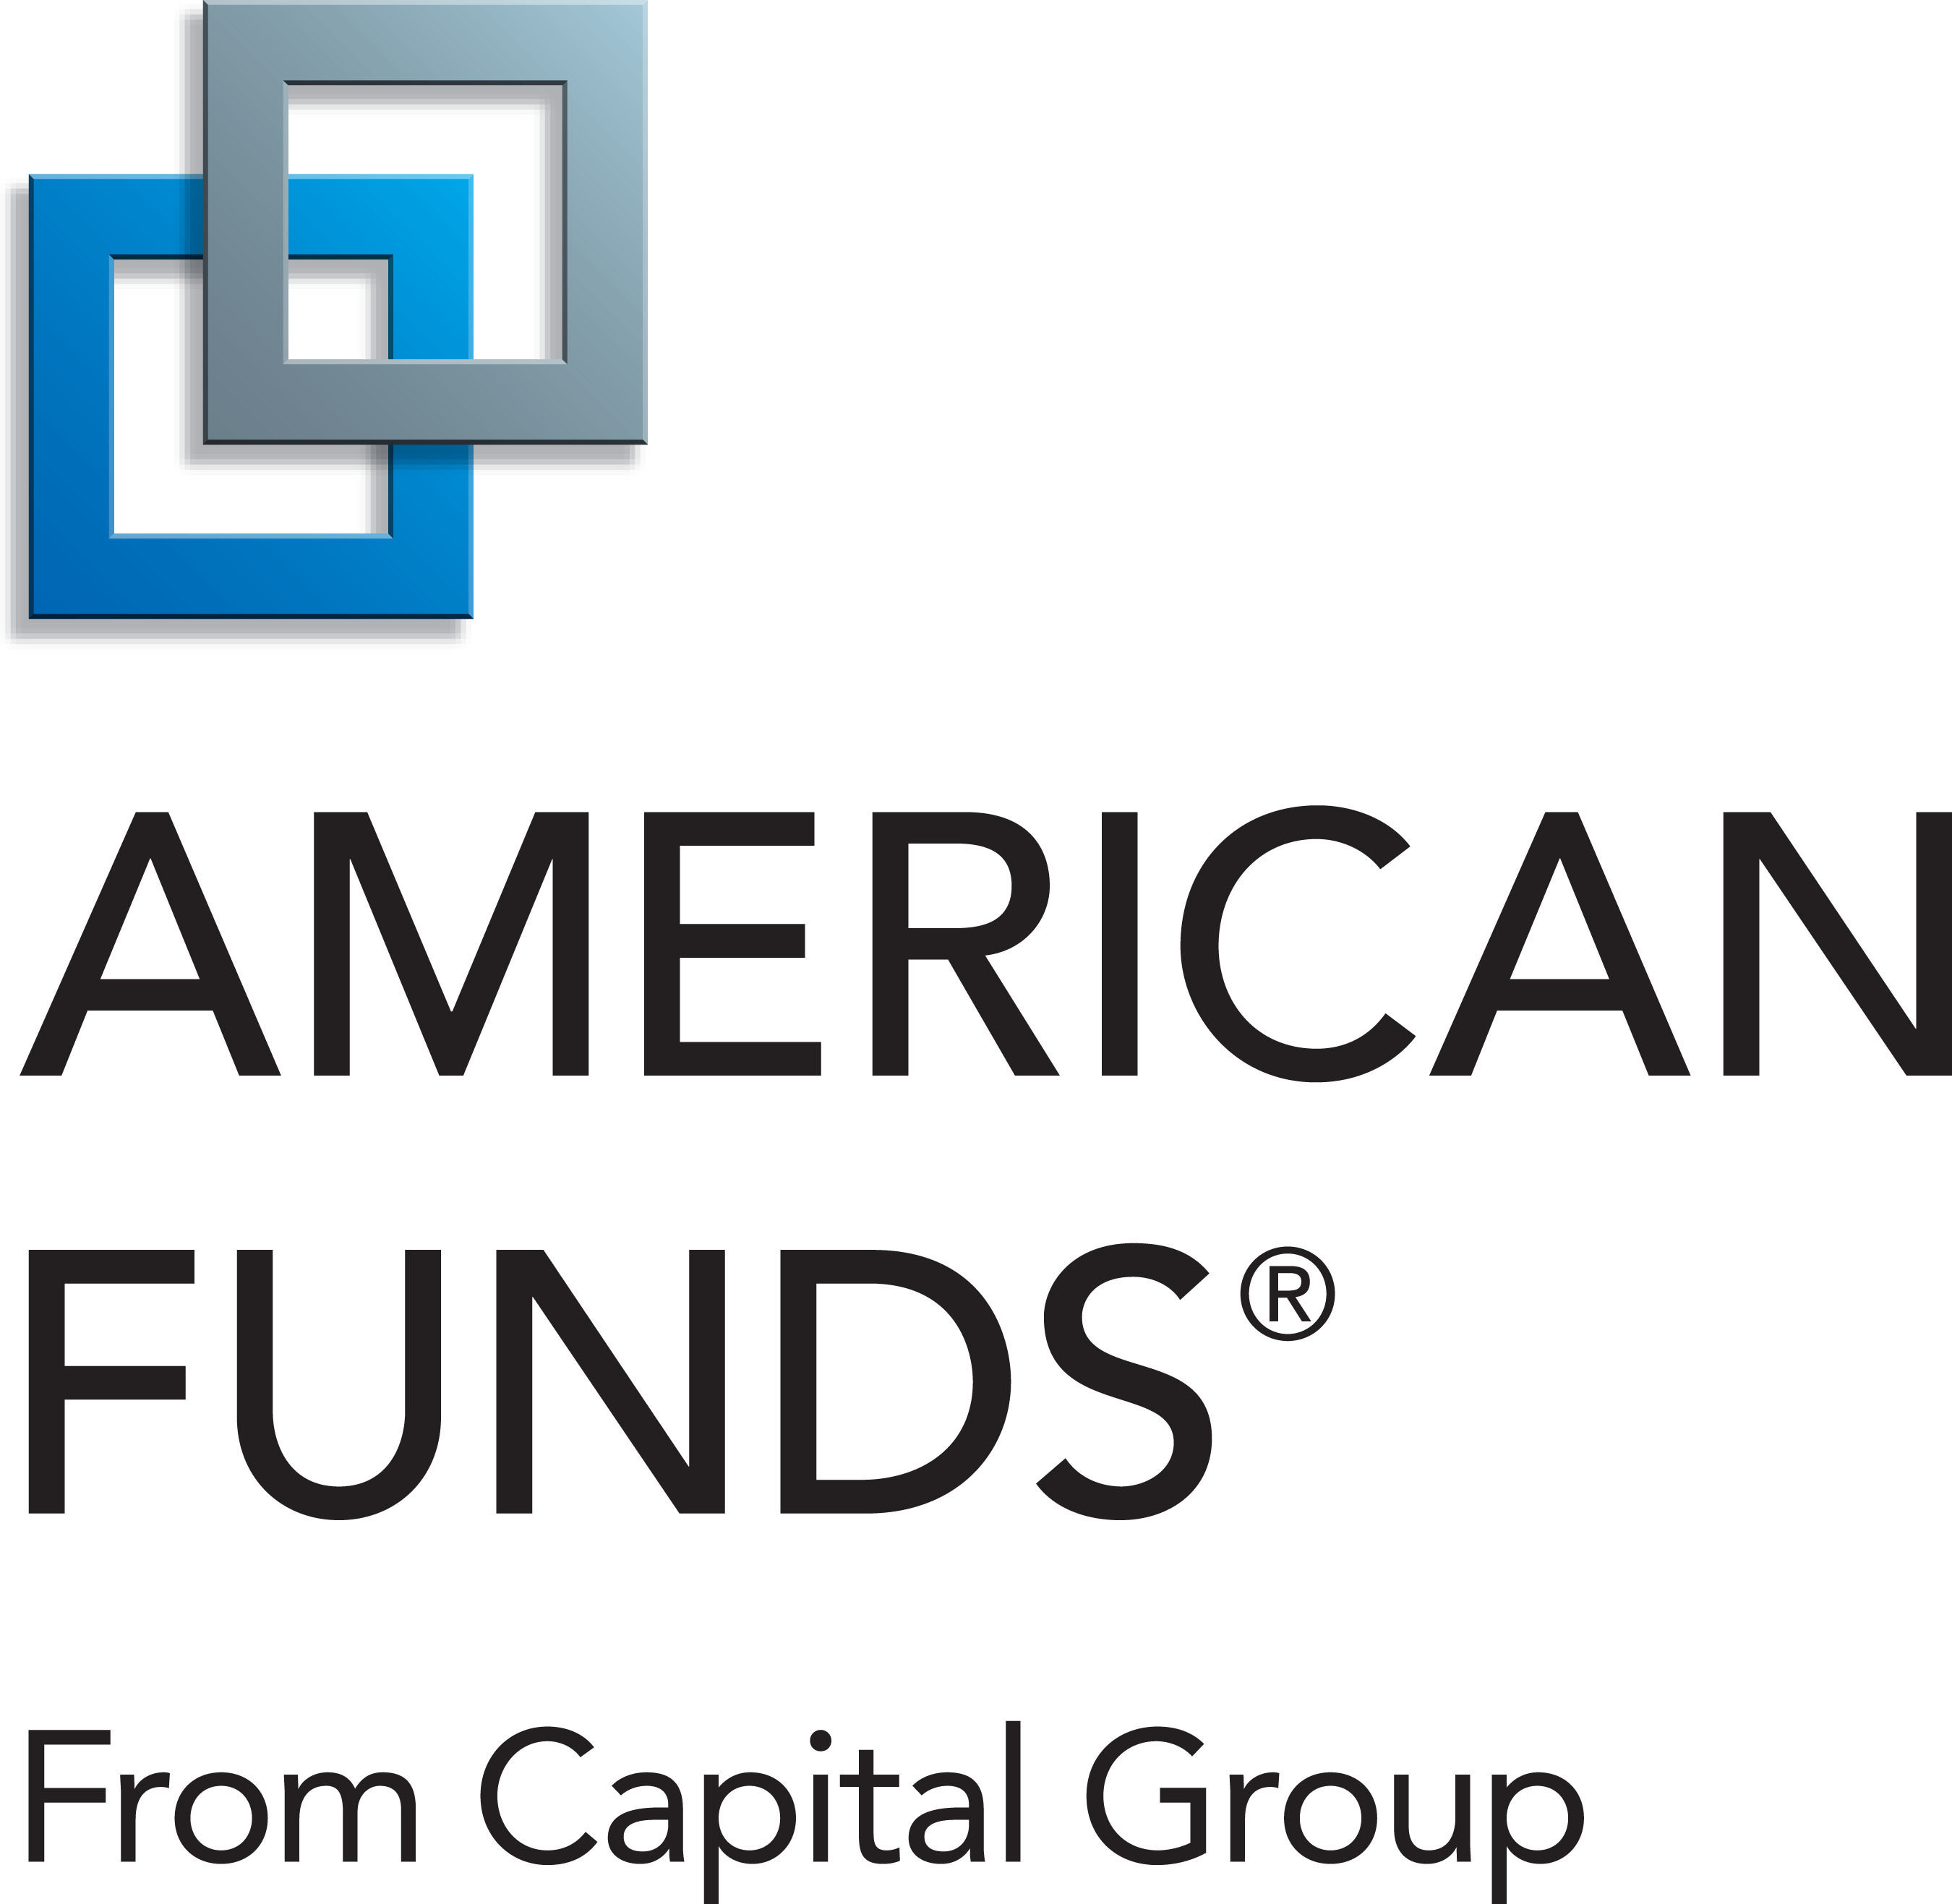 American funds wins multiple lipper mutual fund awards american funds logo biocorpaavc Images